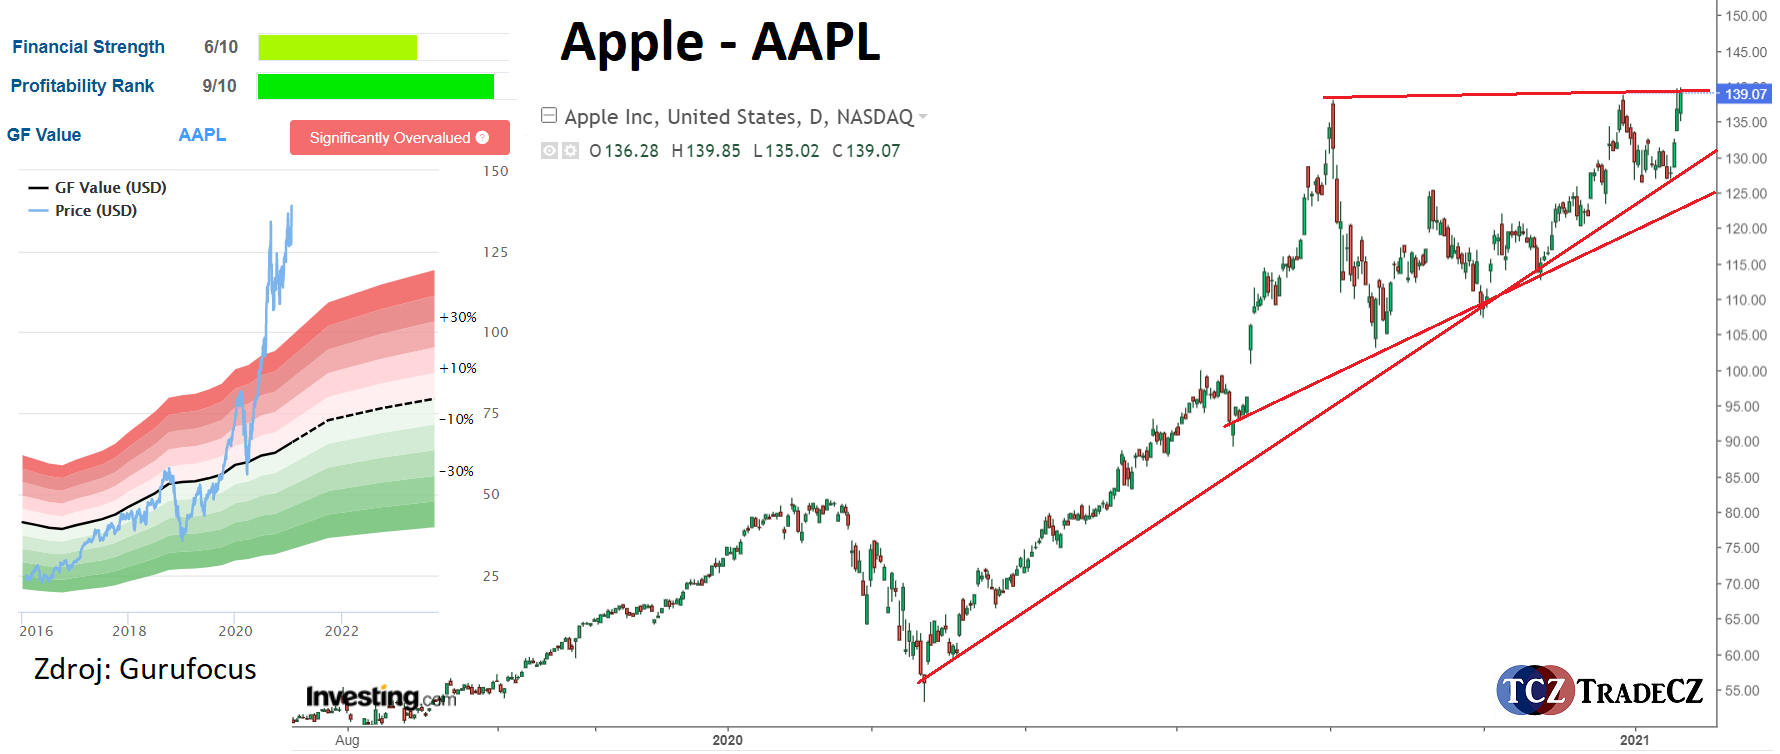 Analýza akcie Apple AAPL